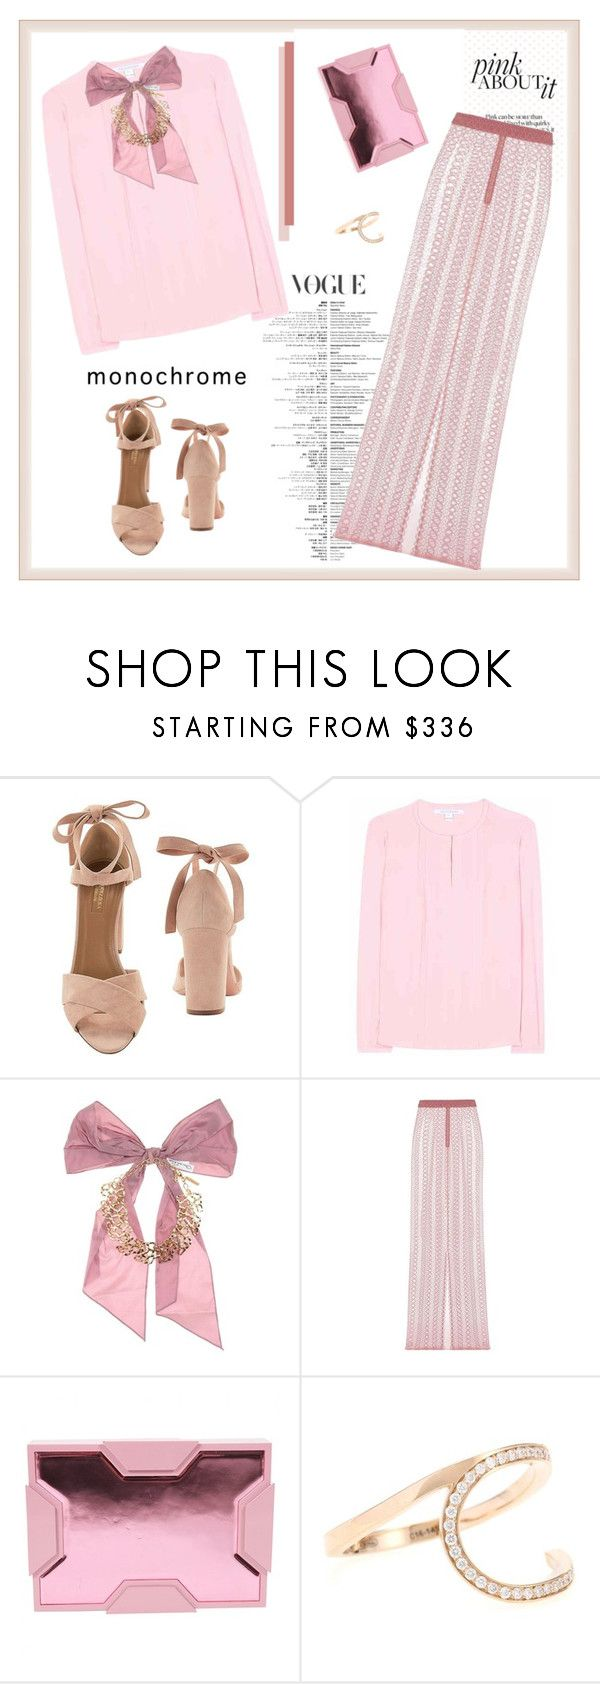 """""""Color Me Pretty: Head-to-Toe Pink♥♥♥"""" by marthalux ❤ liked on Polyvore featuring Aquazzura, Diane Von Furstenberg, Oscar de la Renta, Burberry, Lee Savage, Repossi, monochrome, Color, Pink and Spring2017"""